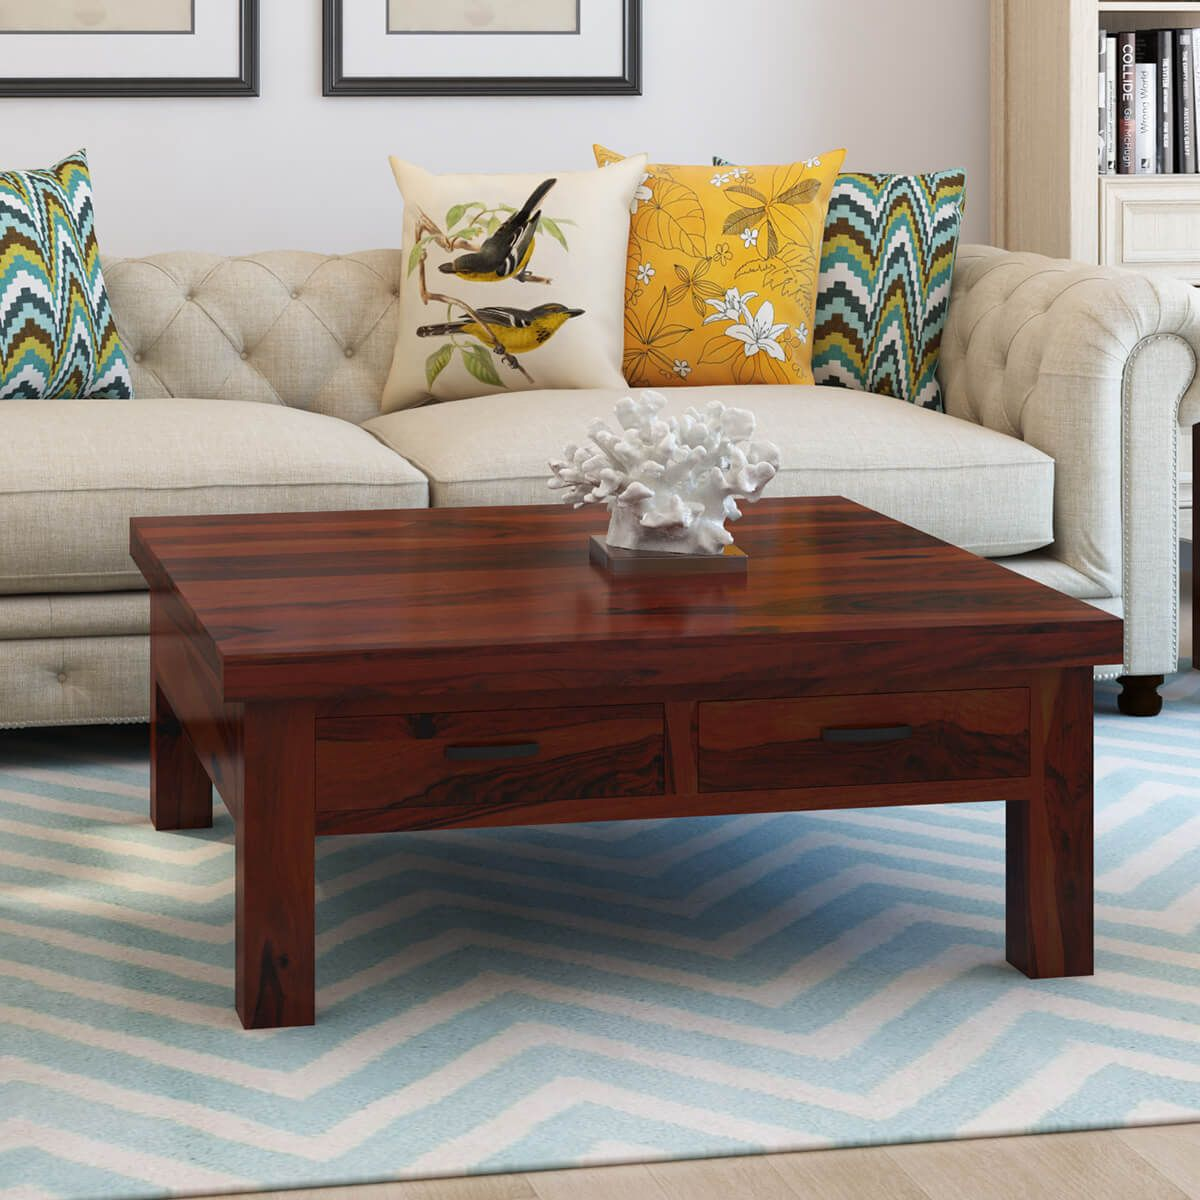 43++ Wood and glass coffee table with drawers ideas in 2021